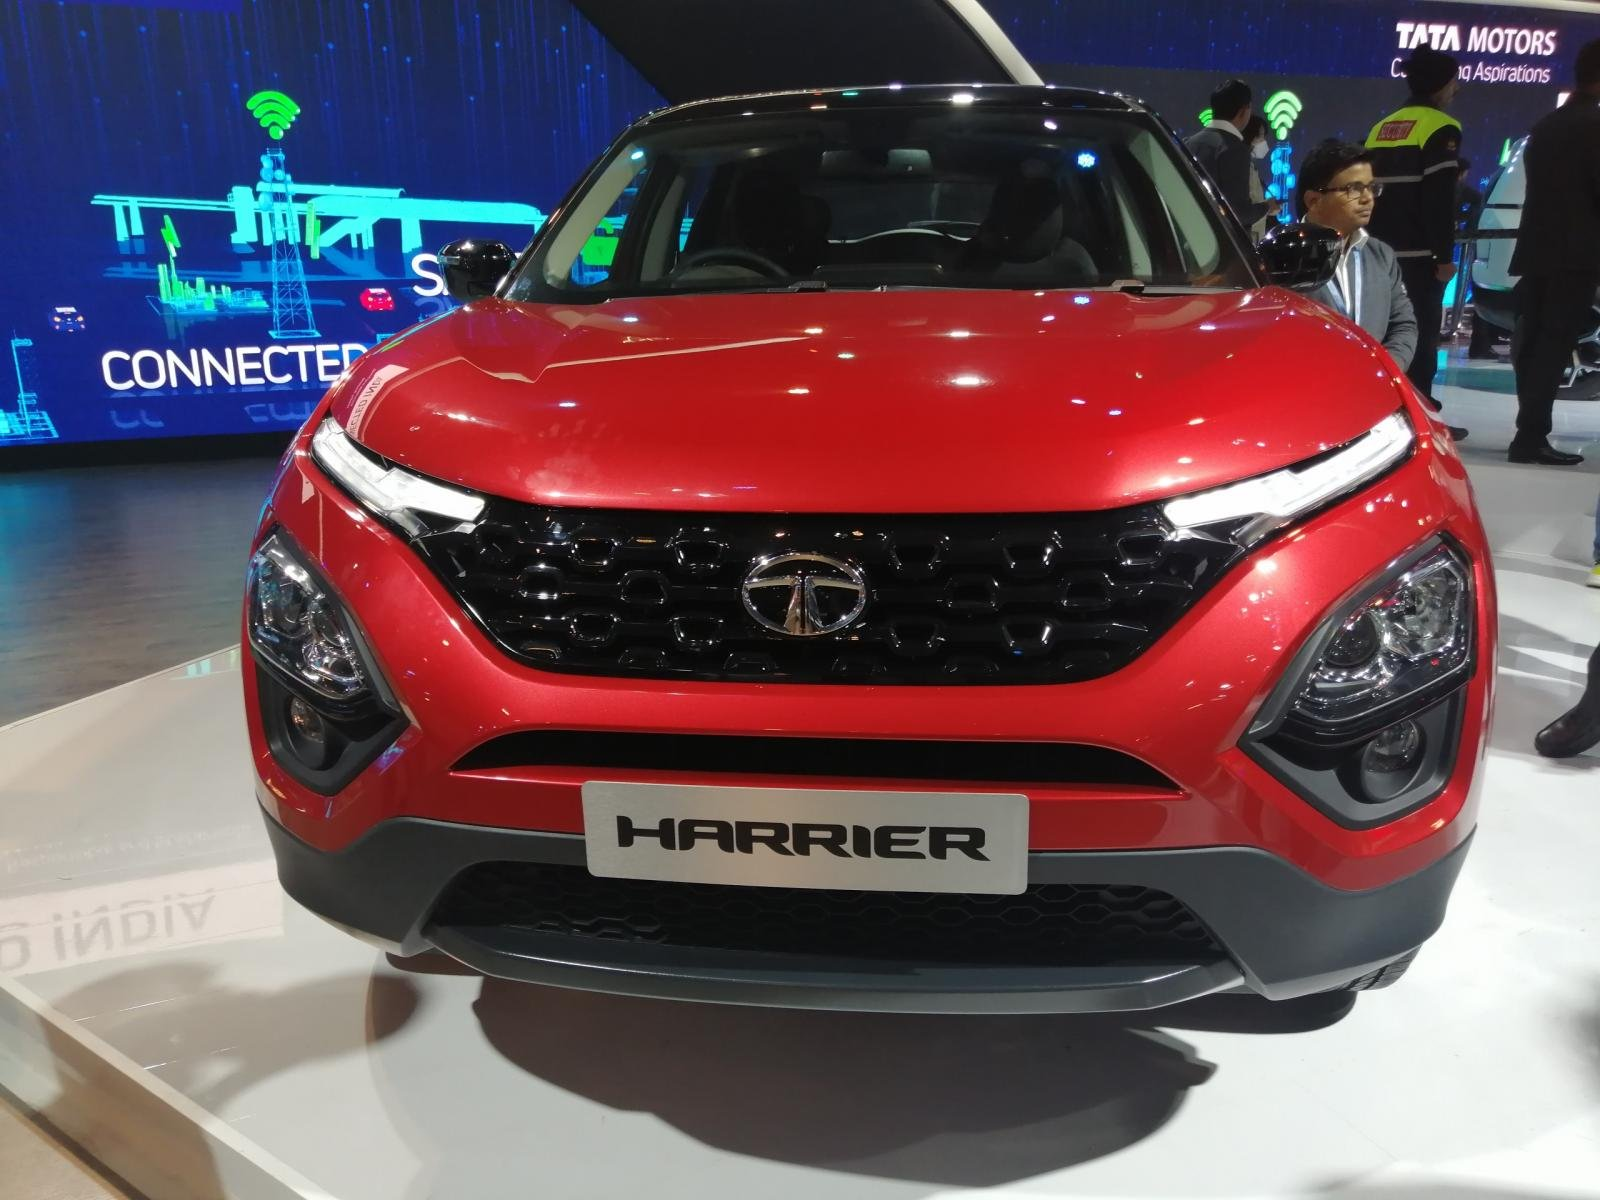 Tata Harrier BS6 Automatic launched at Auto Expo 2020